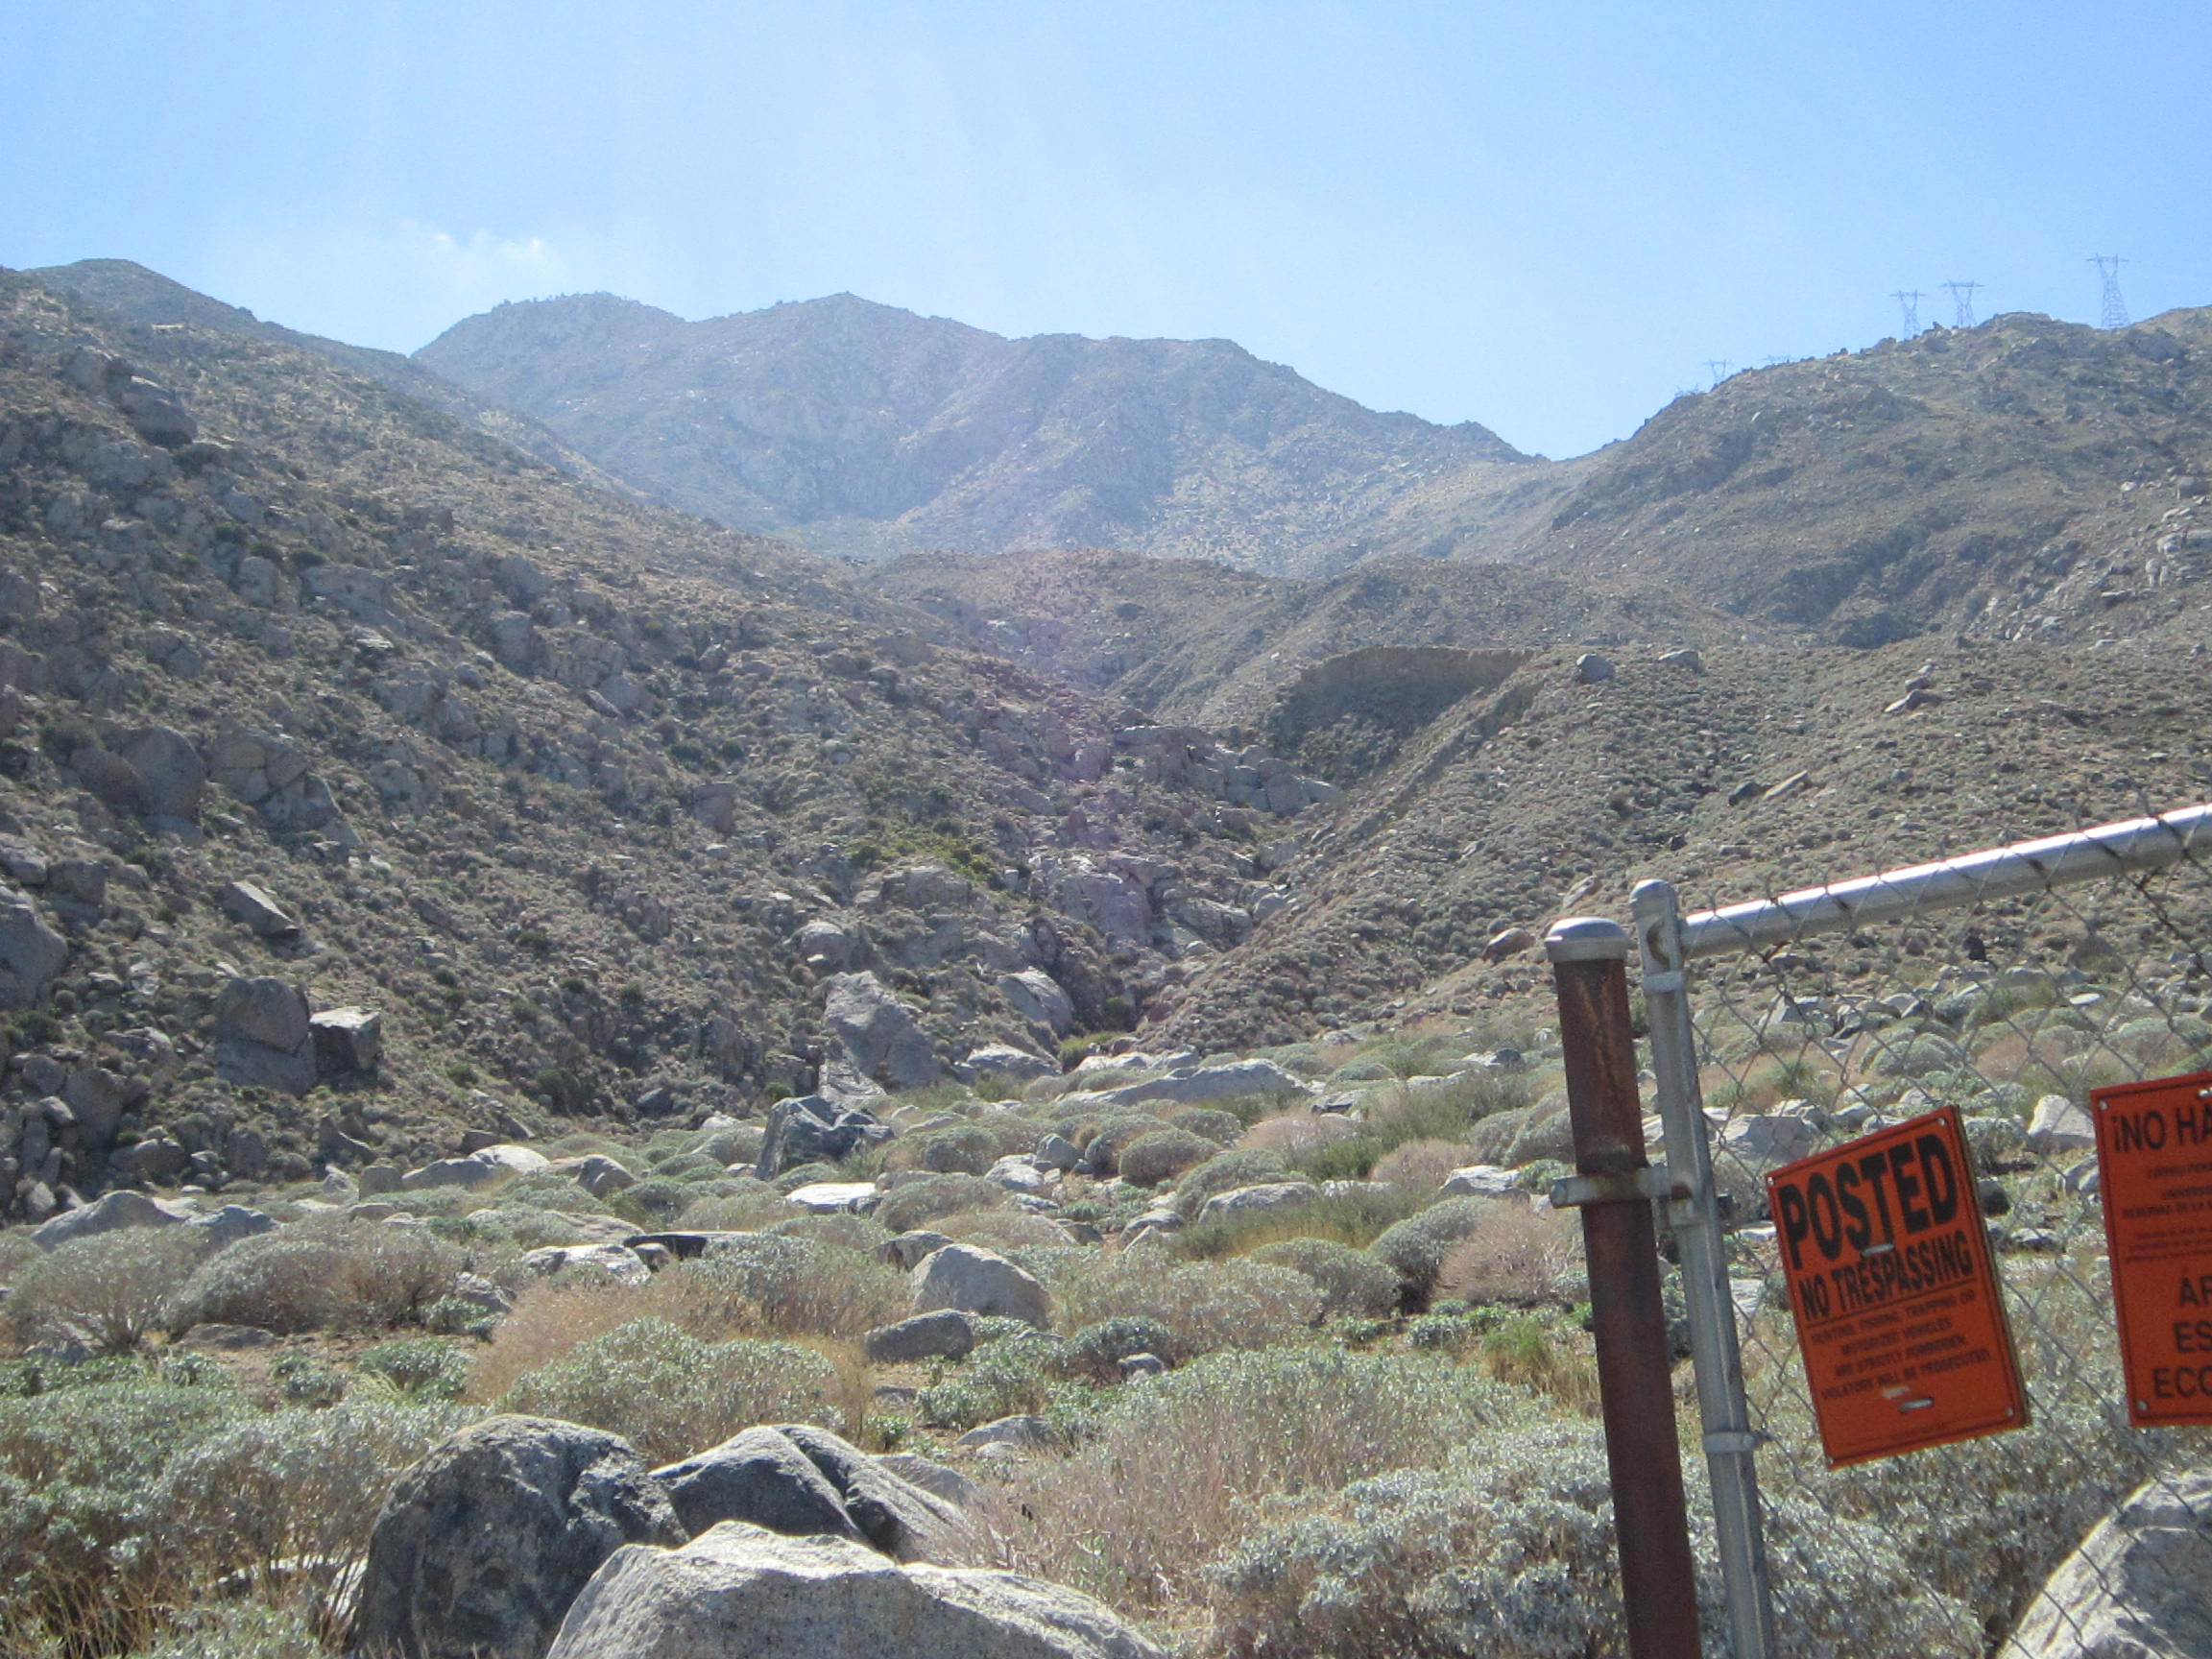 Looking up Lamb's Creek into Oasis de los Osos